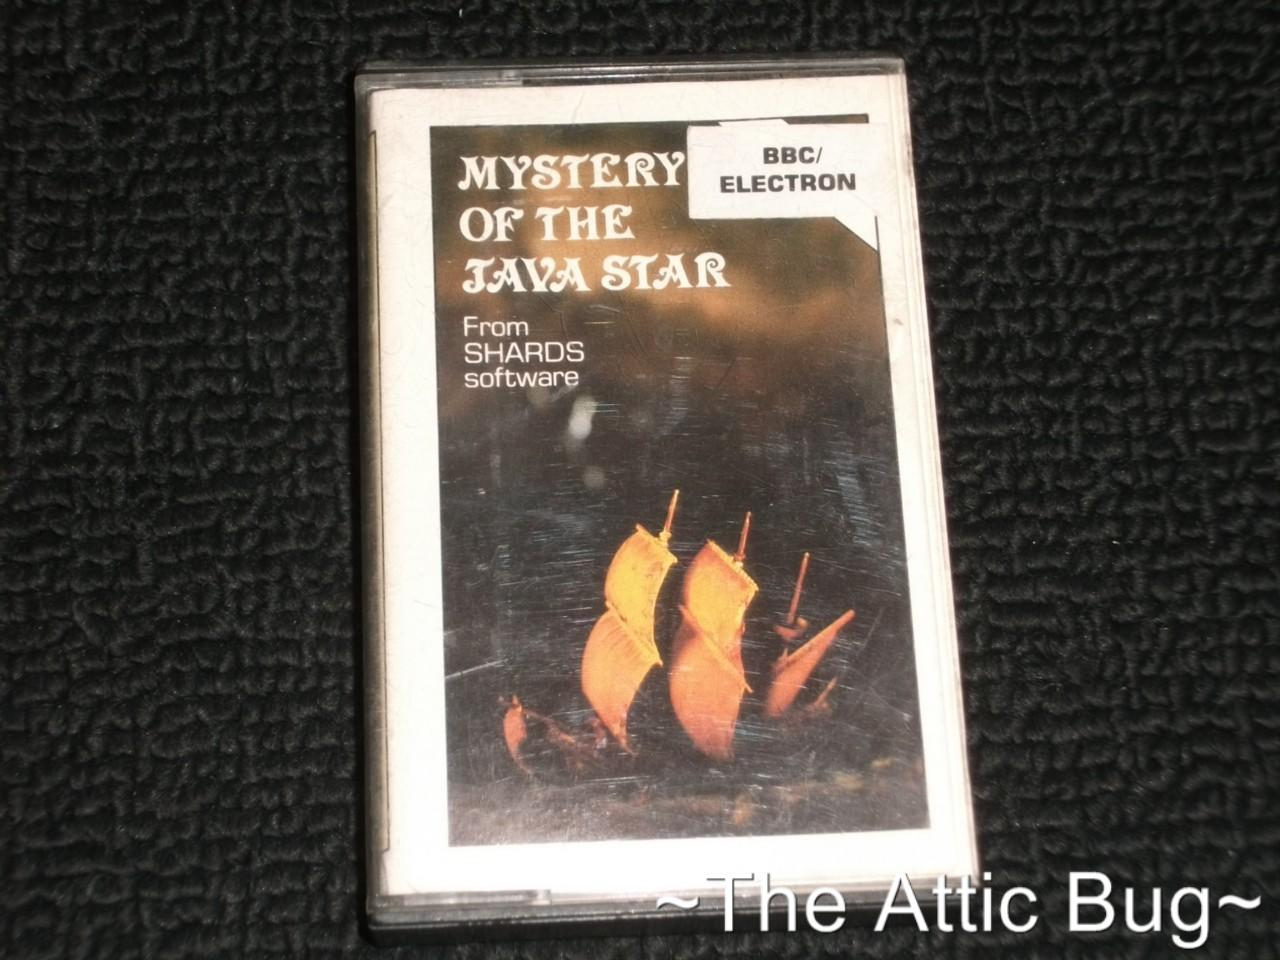 BBC-Micro-Acorn-Electron-Mystery-of-the-Java-Star-by-Shards